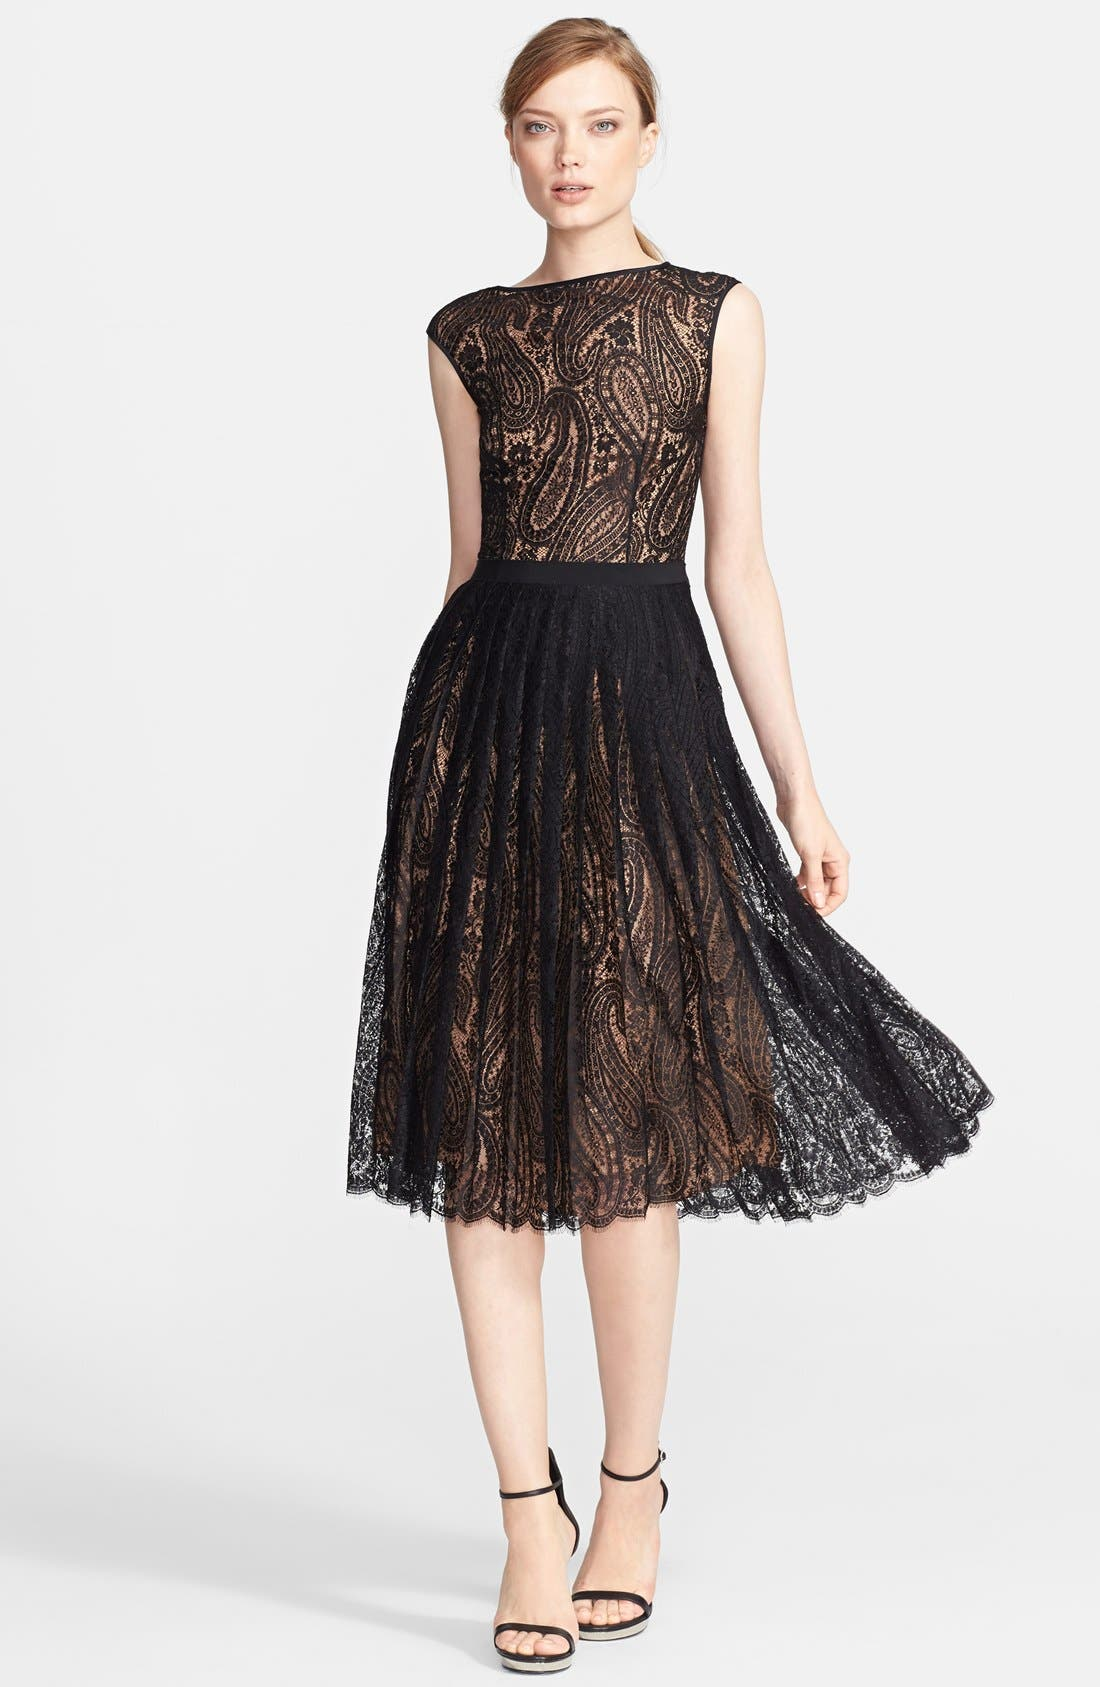 Alternate Image 1 Selected - Michael Kors Boatneck Paisley Lace Dress